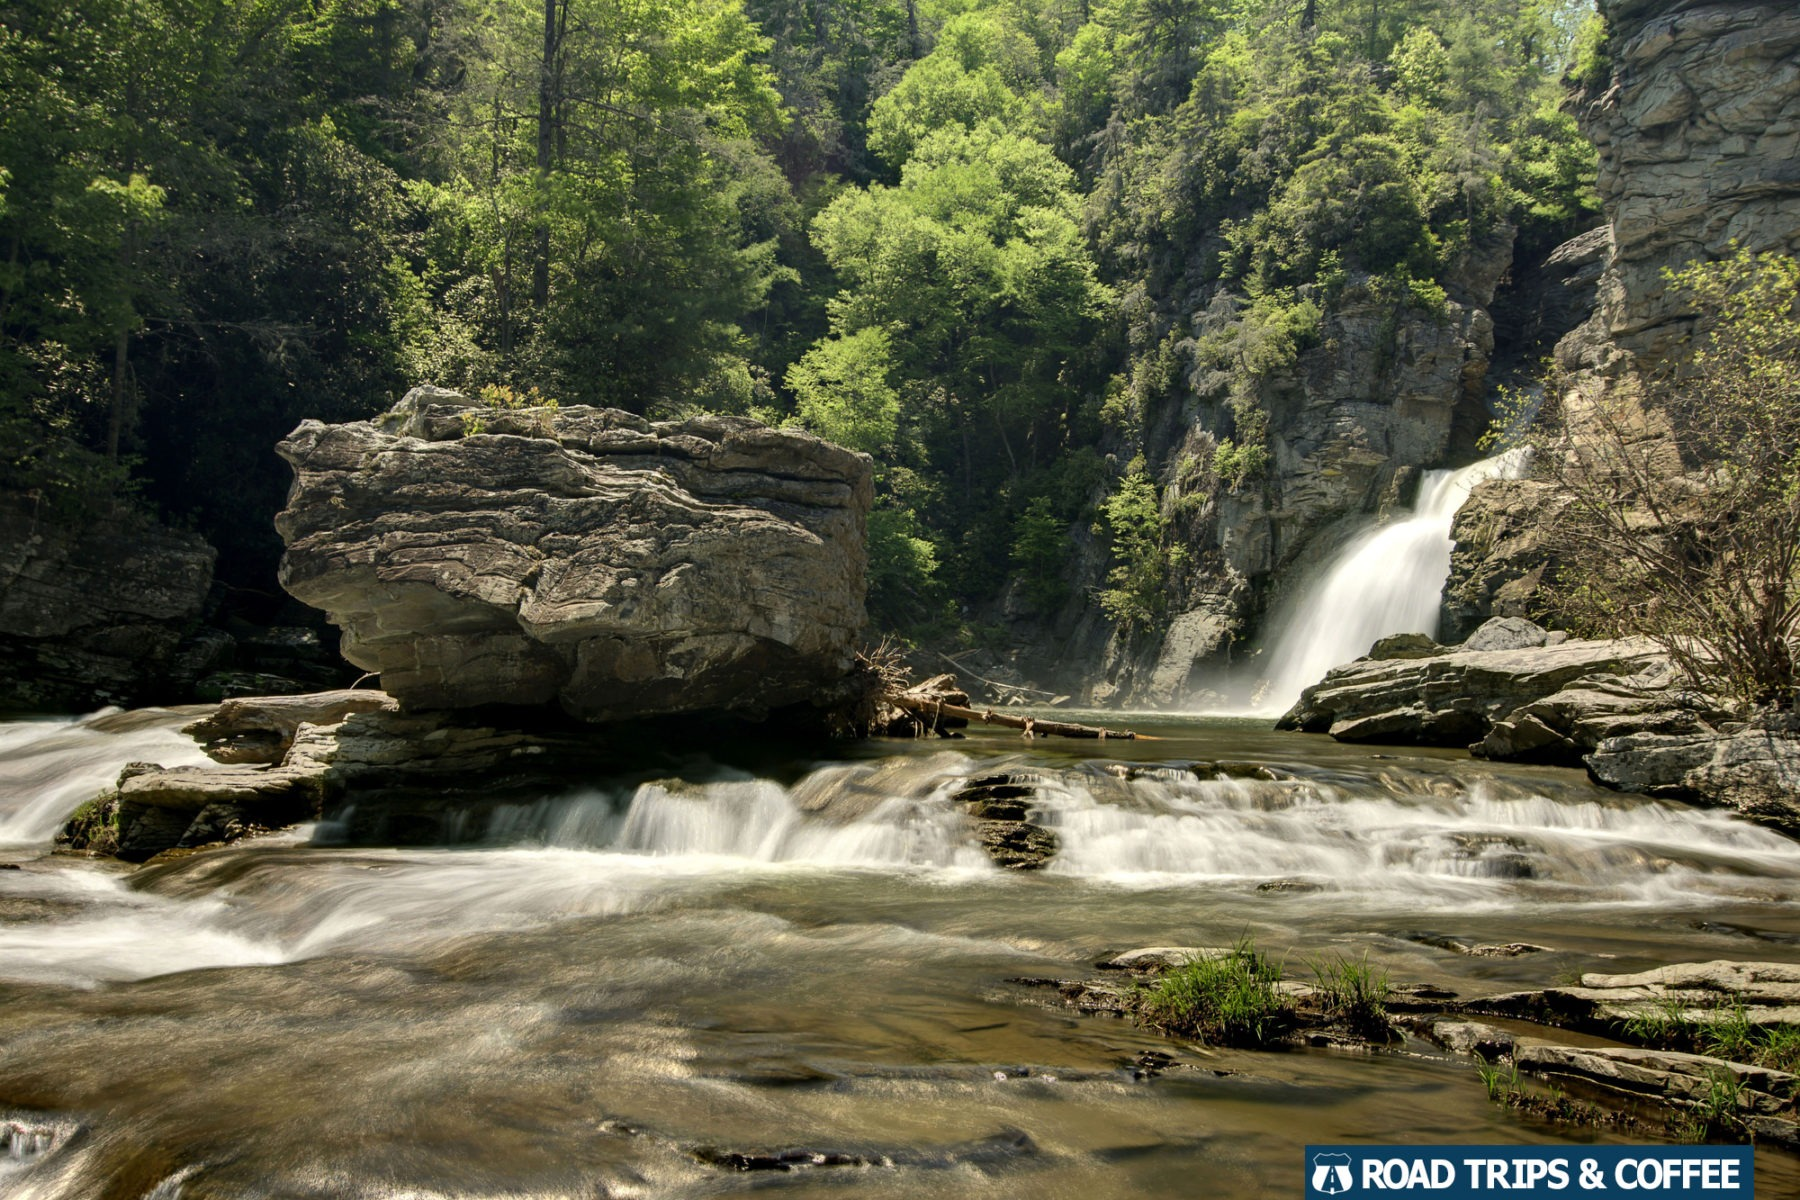 The waterfall crashes into the Plunge Basin at Linville Falls on the Blue Ridge Parkway in North Carolina